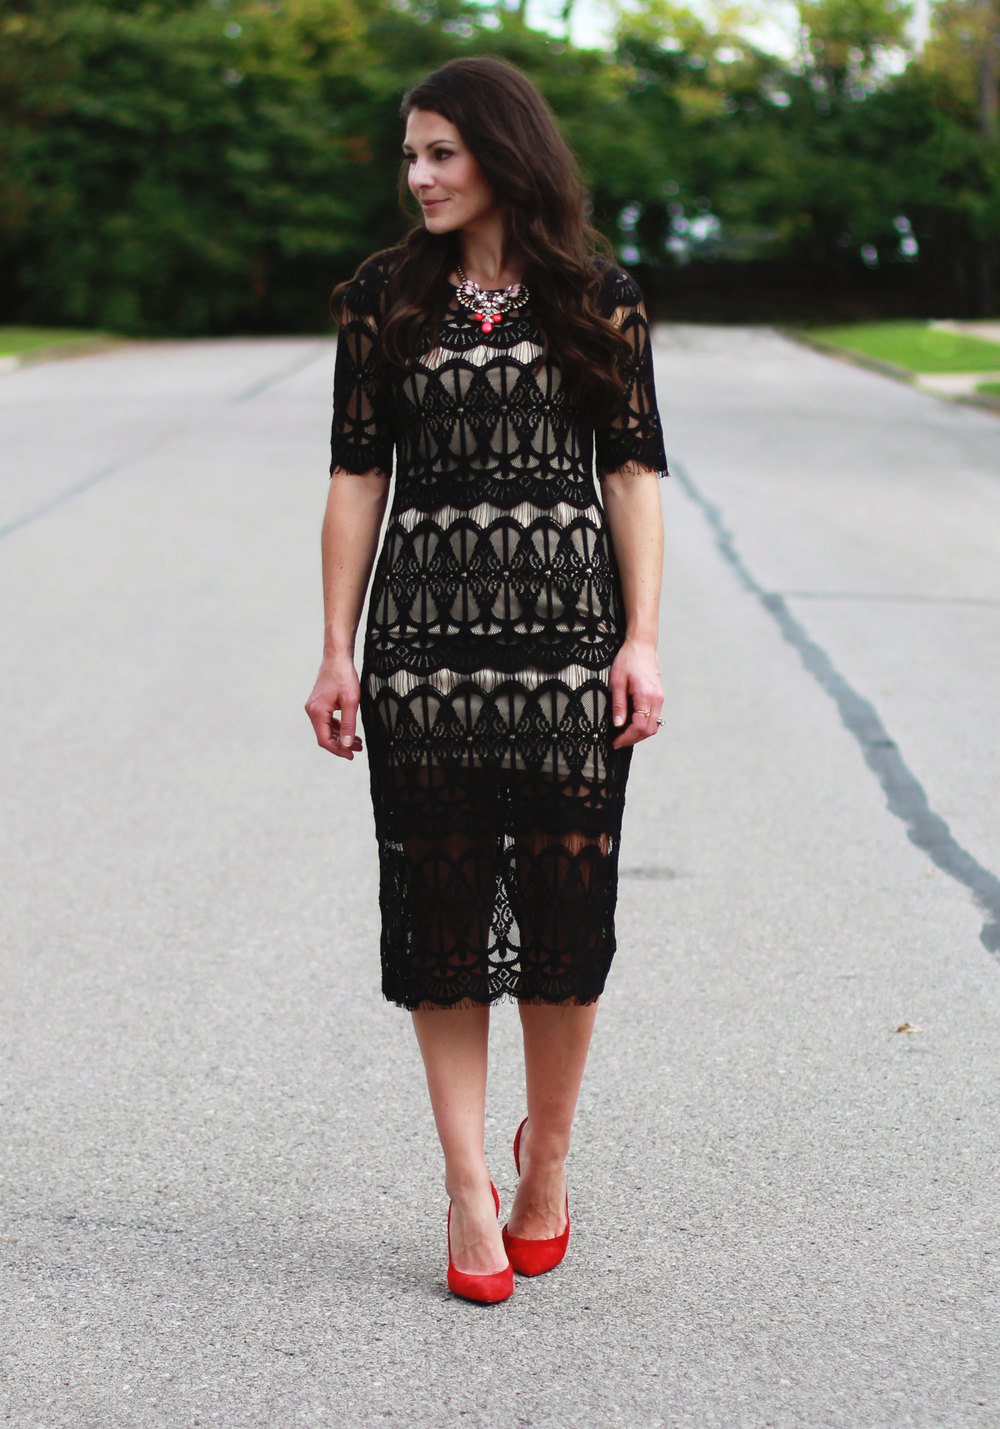 Fall Fashion, JOA Lace Body-Con Dress, Wedding Guest Attire, Statement Necklace, Midi Dress, Jessica Simpson Claudette Pumps